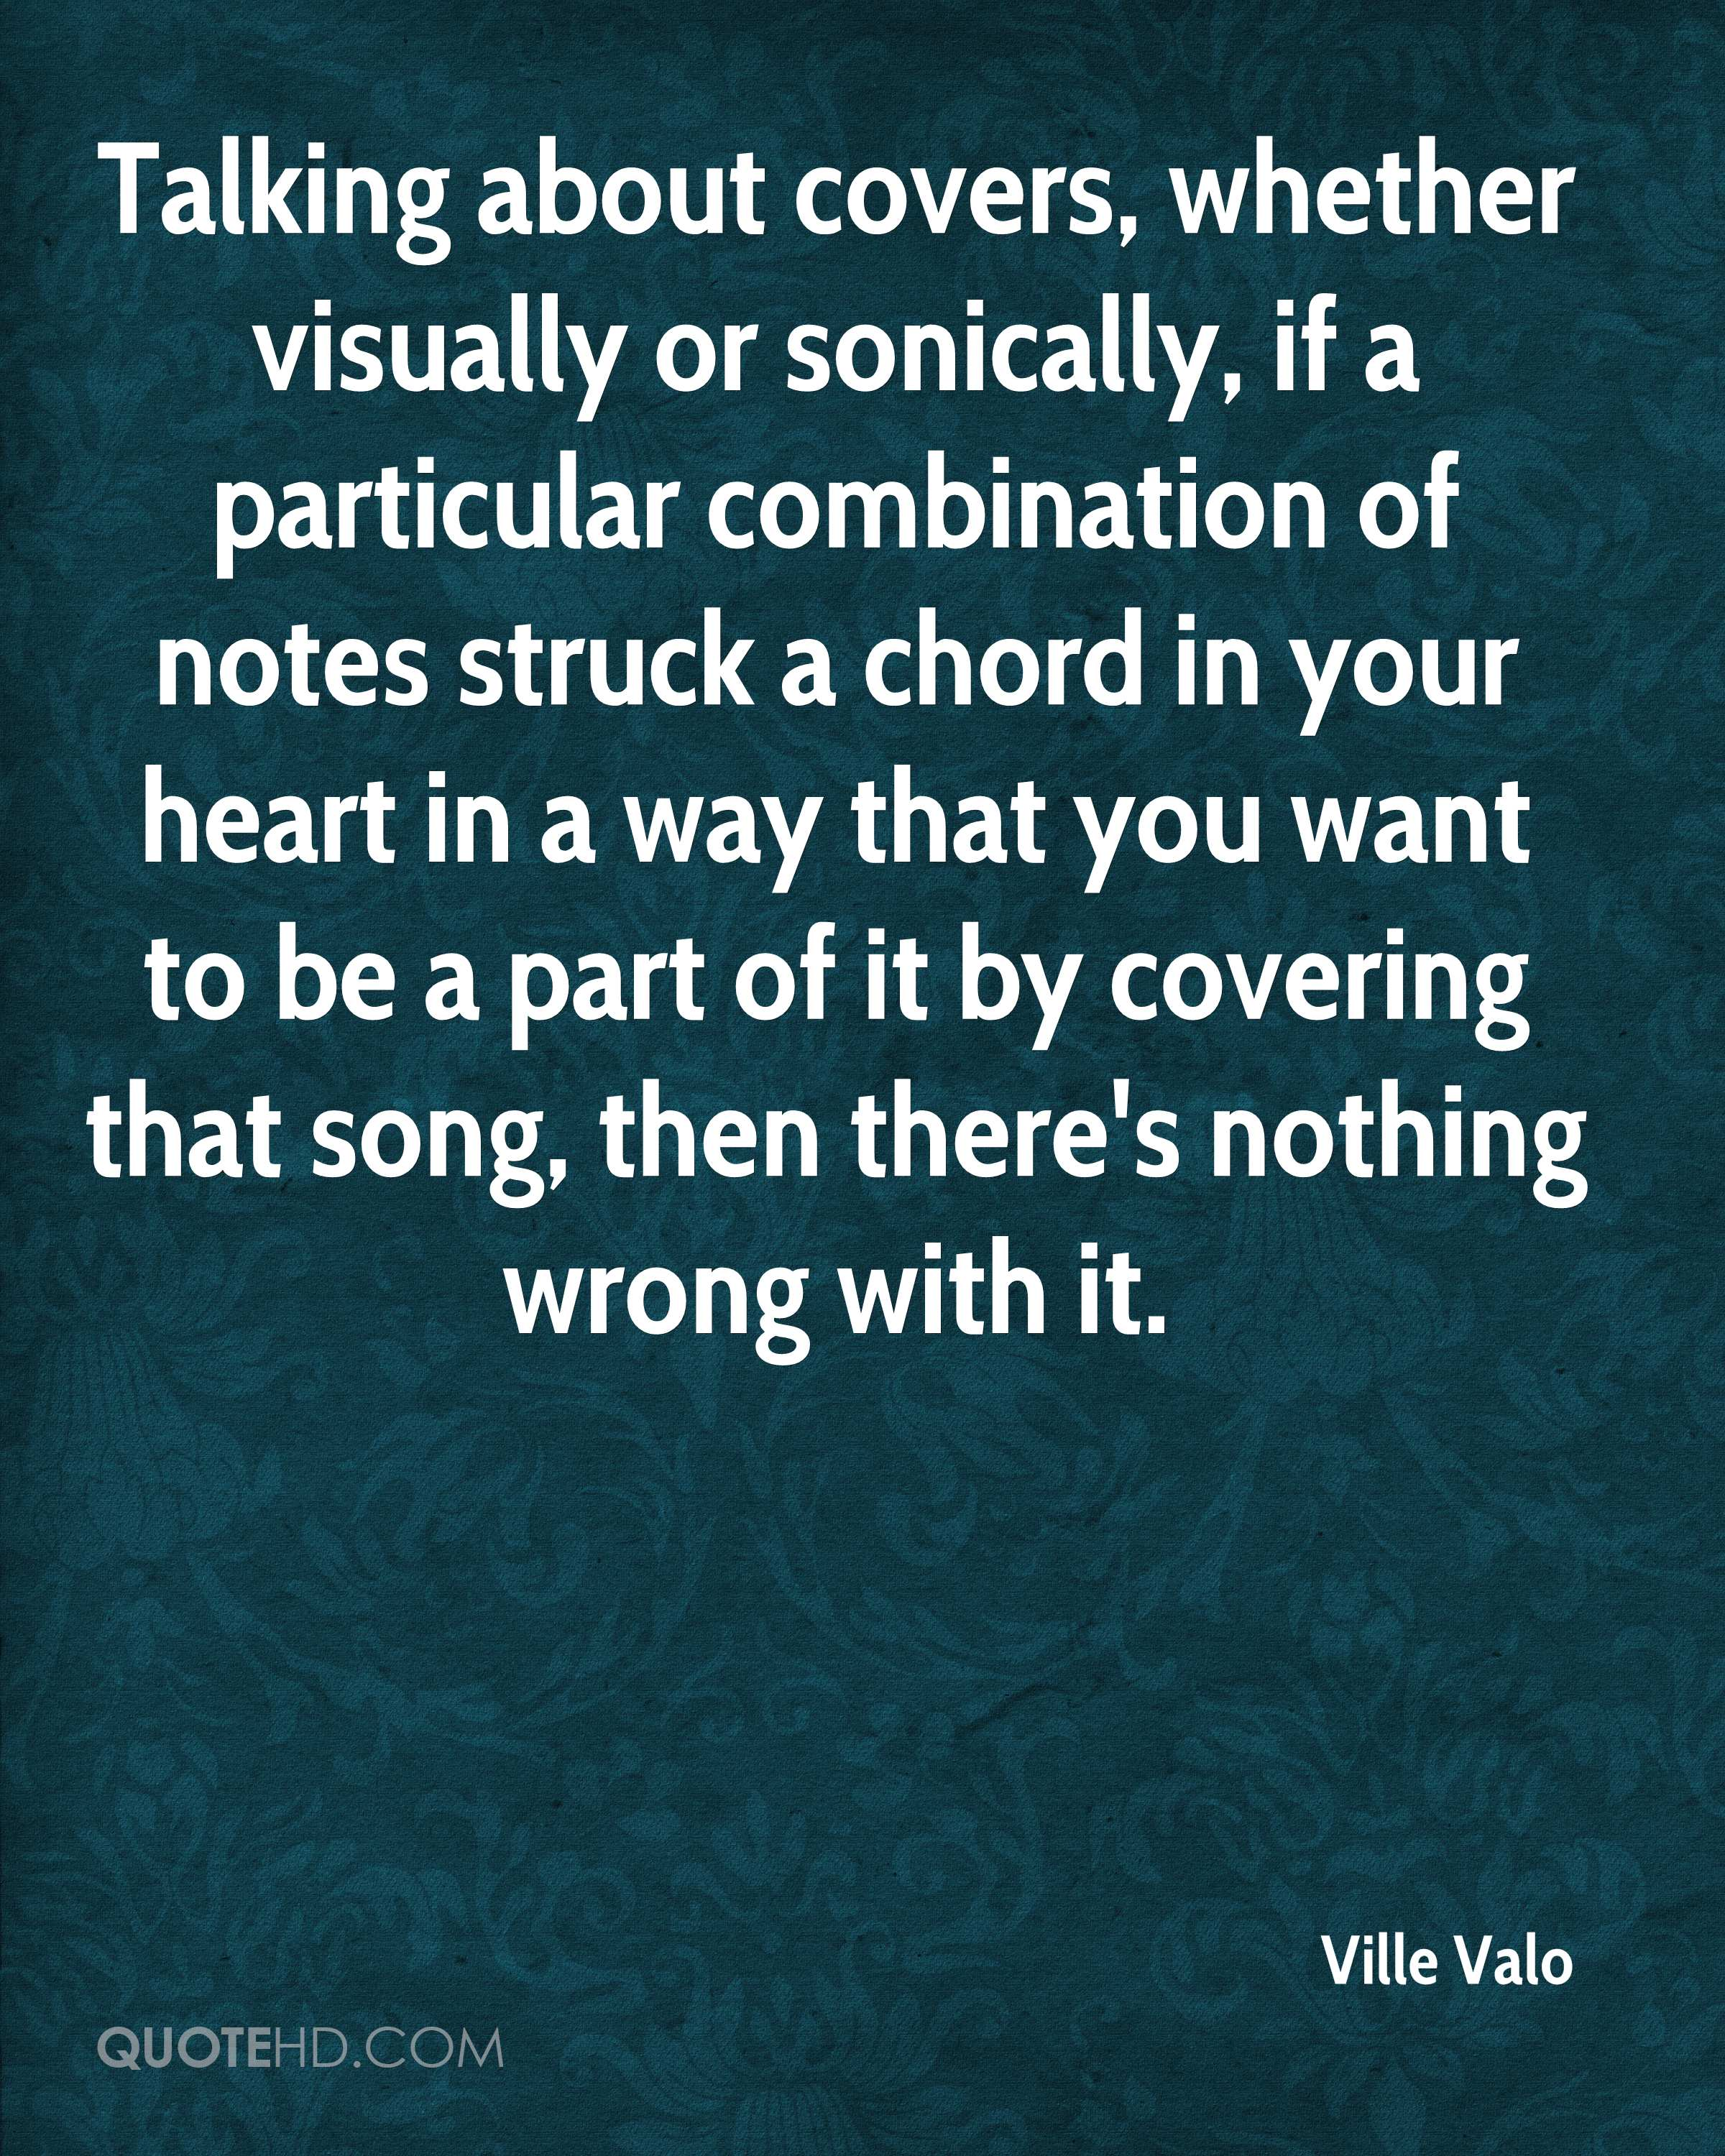 Talking about covers, whether visually or sonically, if a particular combination of notes struck a chord in your heart in a way that you want to be a part of it by covering that song, then there's nothing wrong with it.